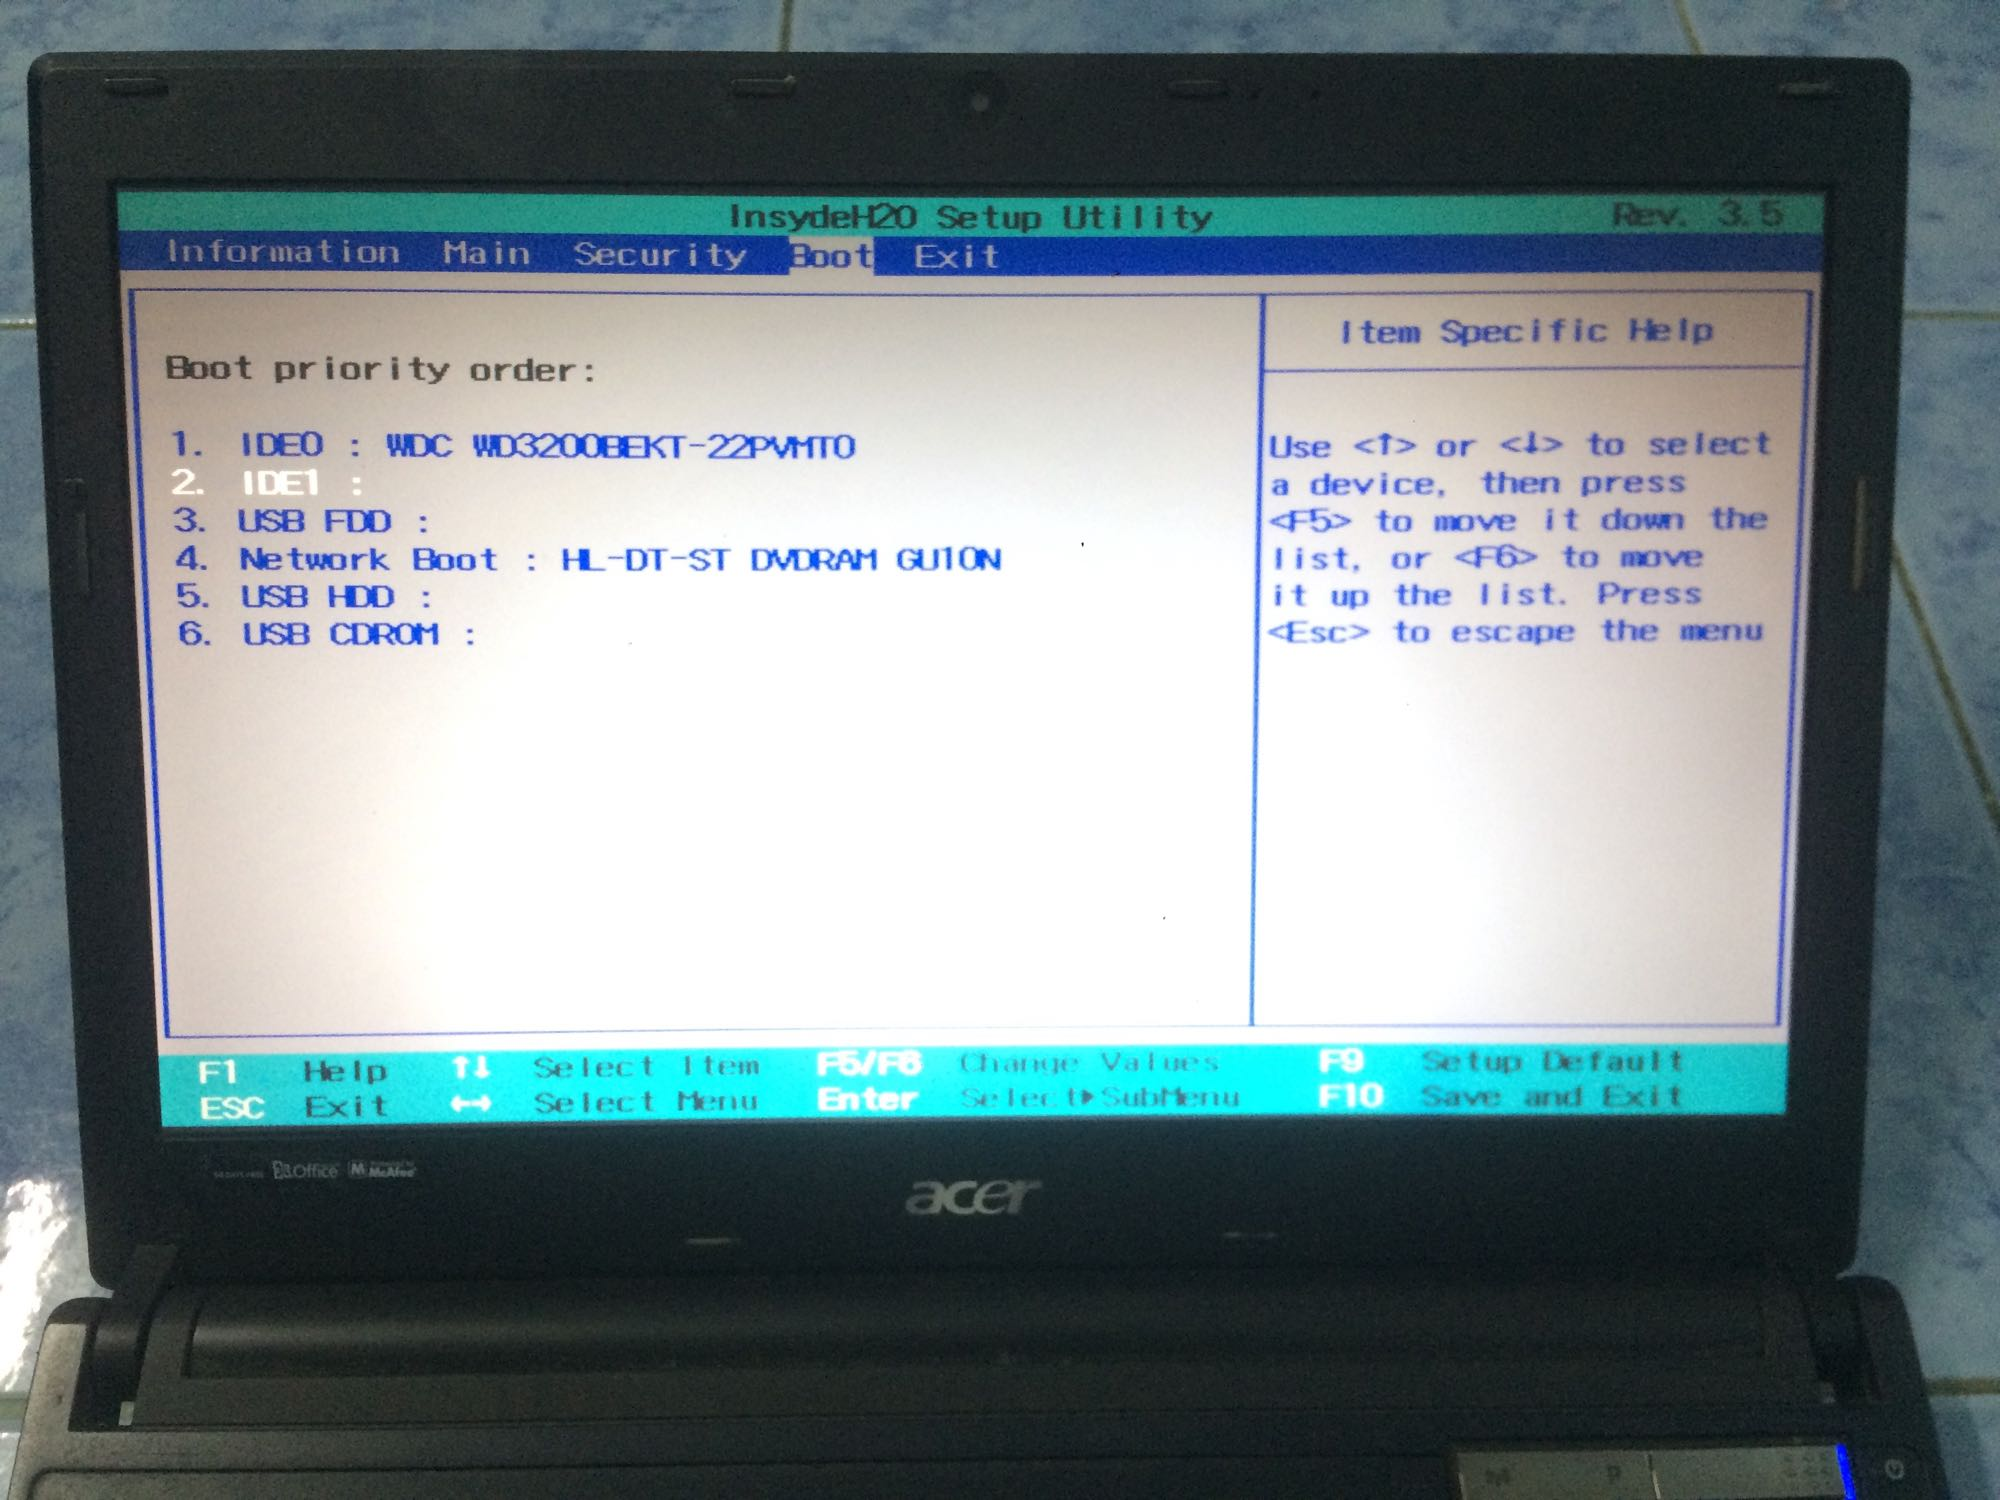 Notebook acer ขึ้น No bootable device insert boot disk and press any